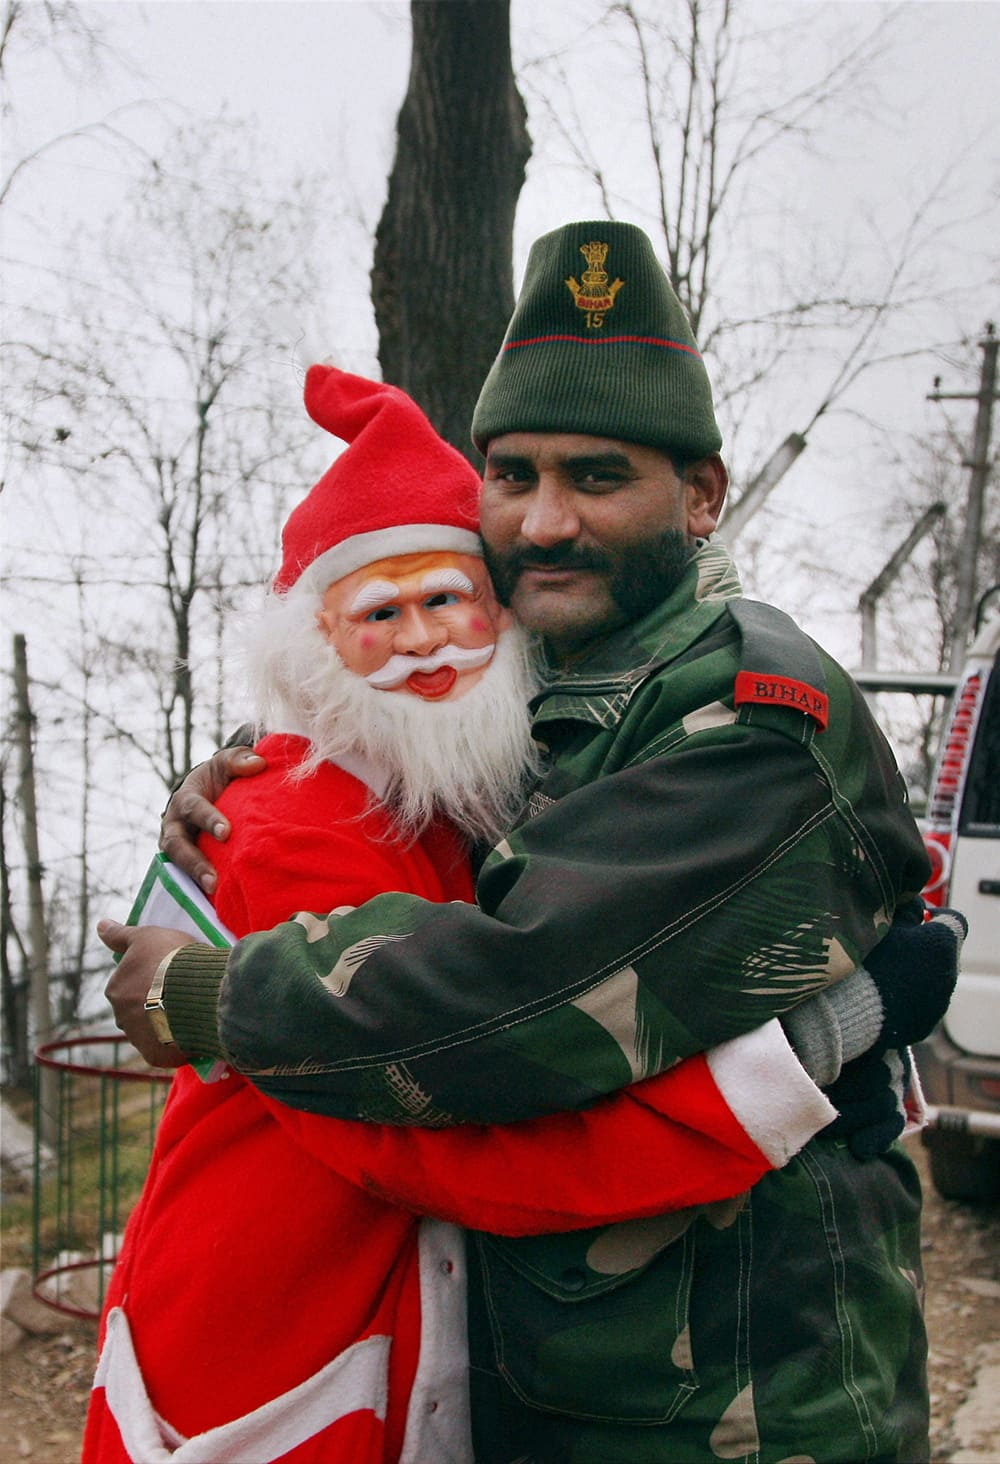 A man dressed as Santa claus greets an army Jawan on the occasion Christma at Bhimber Gali LoC, Poonch district about 250 Km from Jammu.